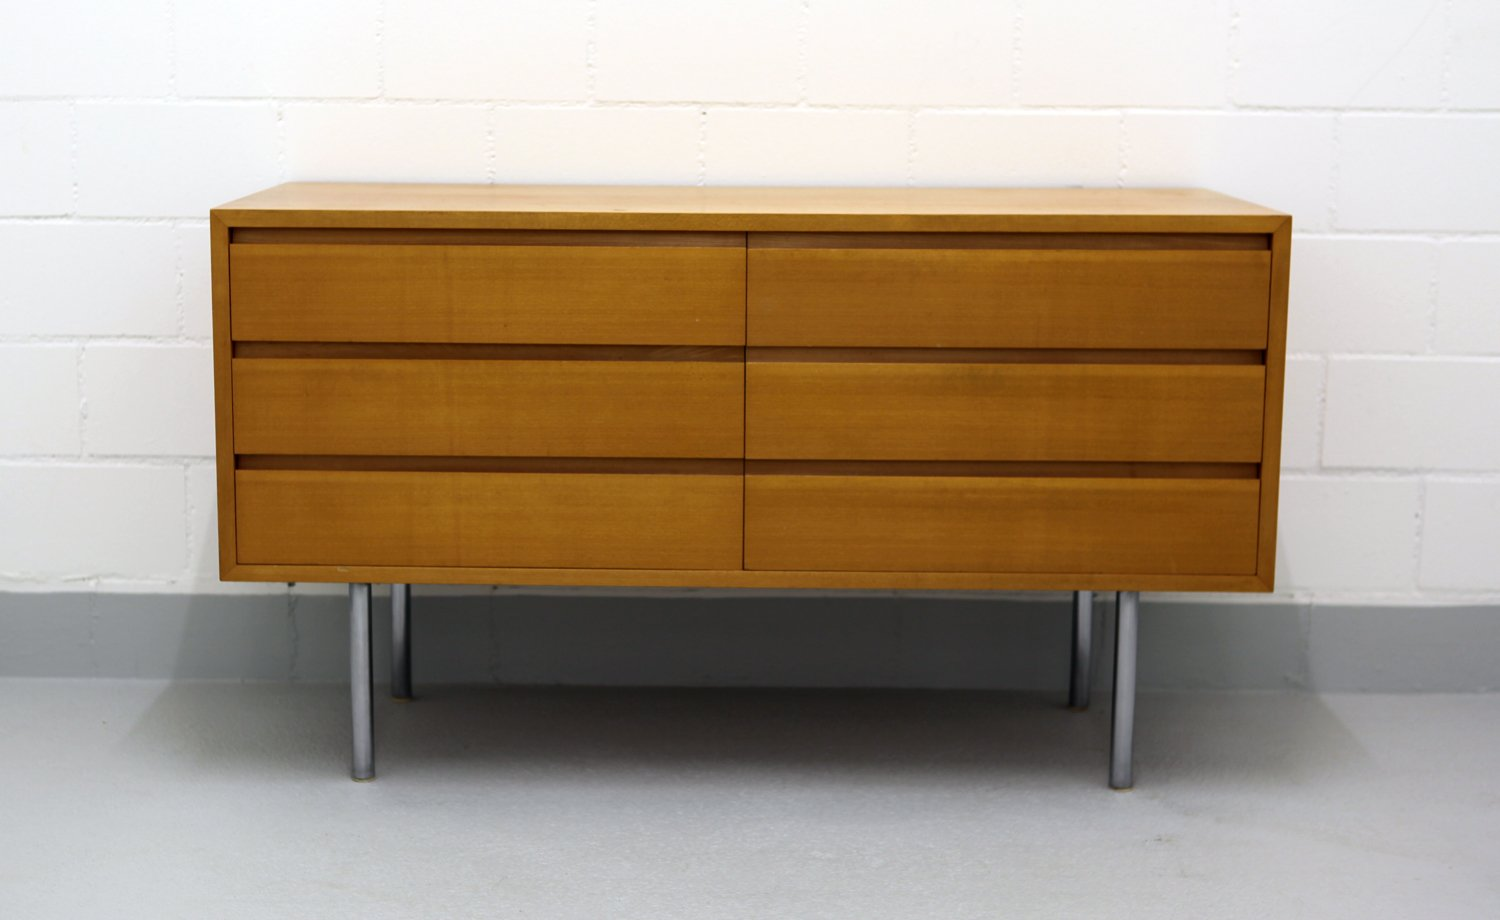 schweizer sideboard von kurt thut f r thut m bel 1953 bei pamono kaufen. Black Bedroom Furniture Sets. Home Design Ideas